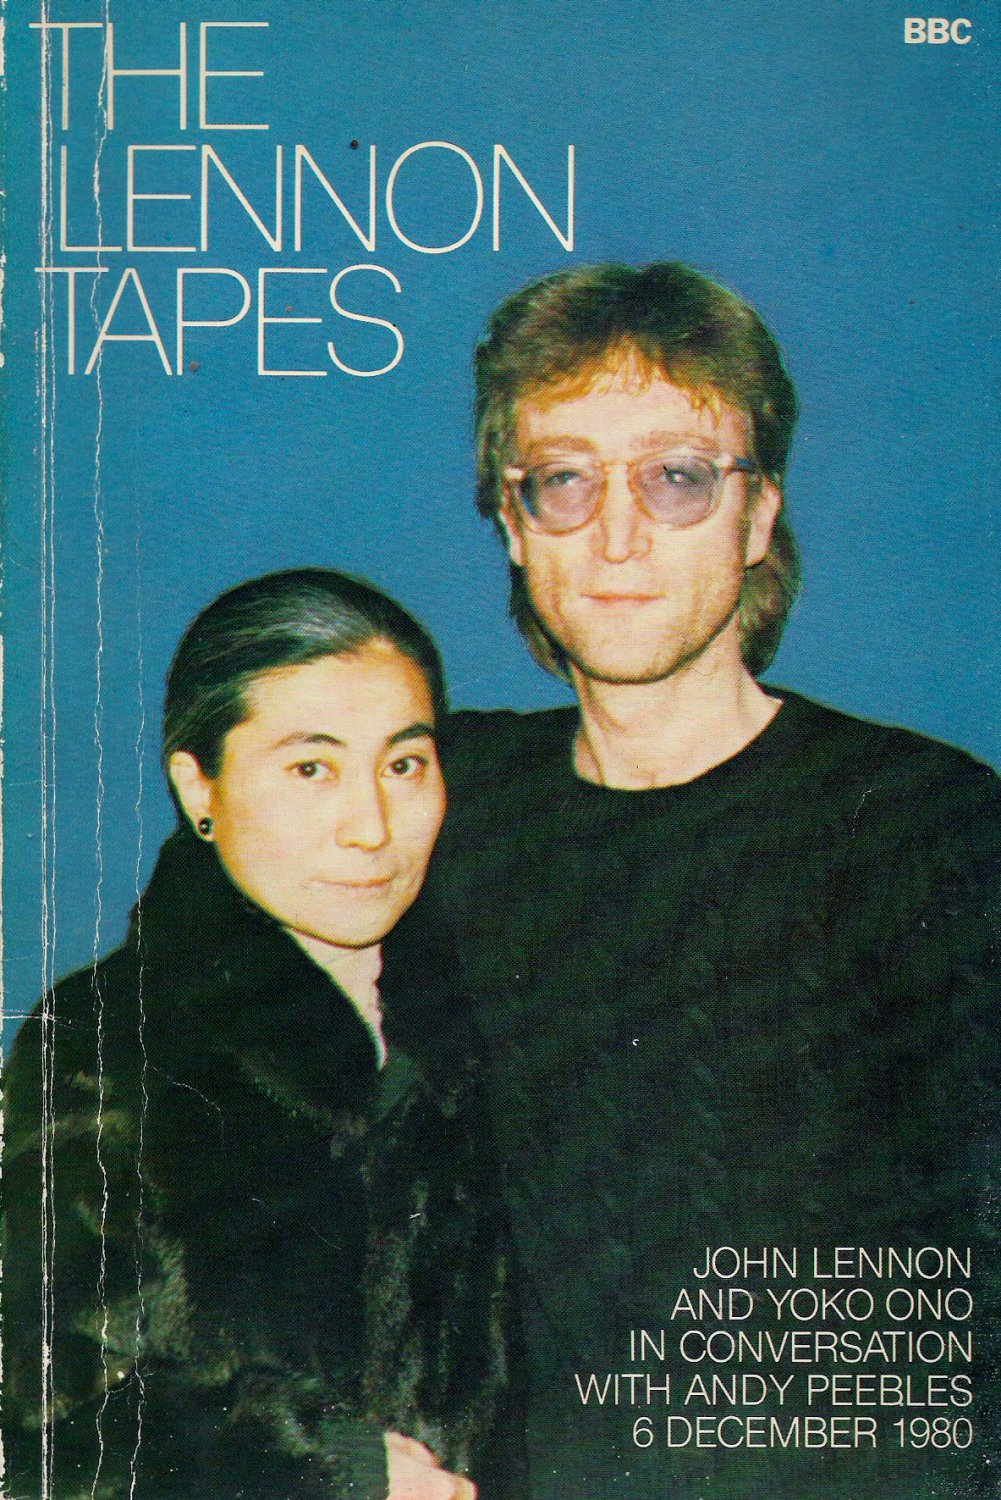 The Lennon Tapes: John Lennon & Yoko Ono in Conversation with Andy Peebles 6 12 1980 by  John Lennon